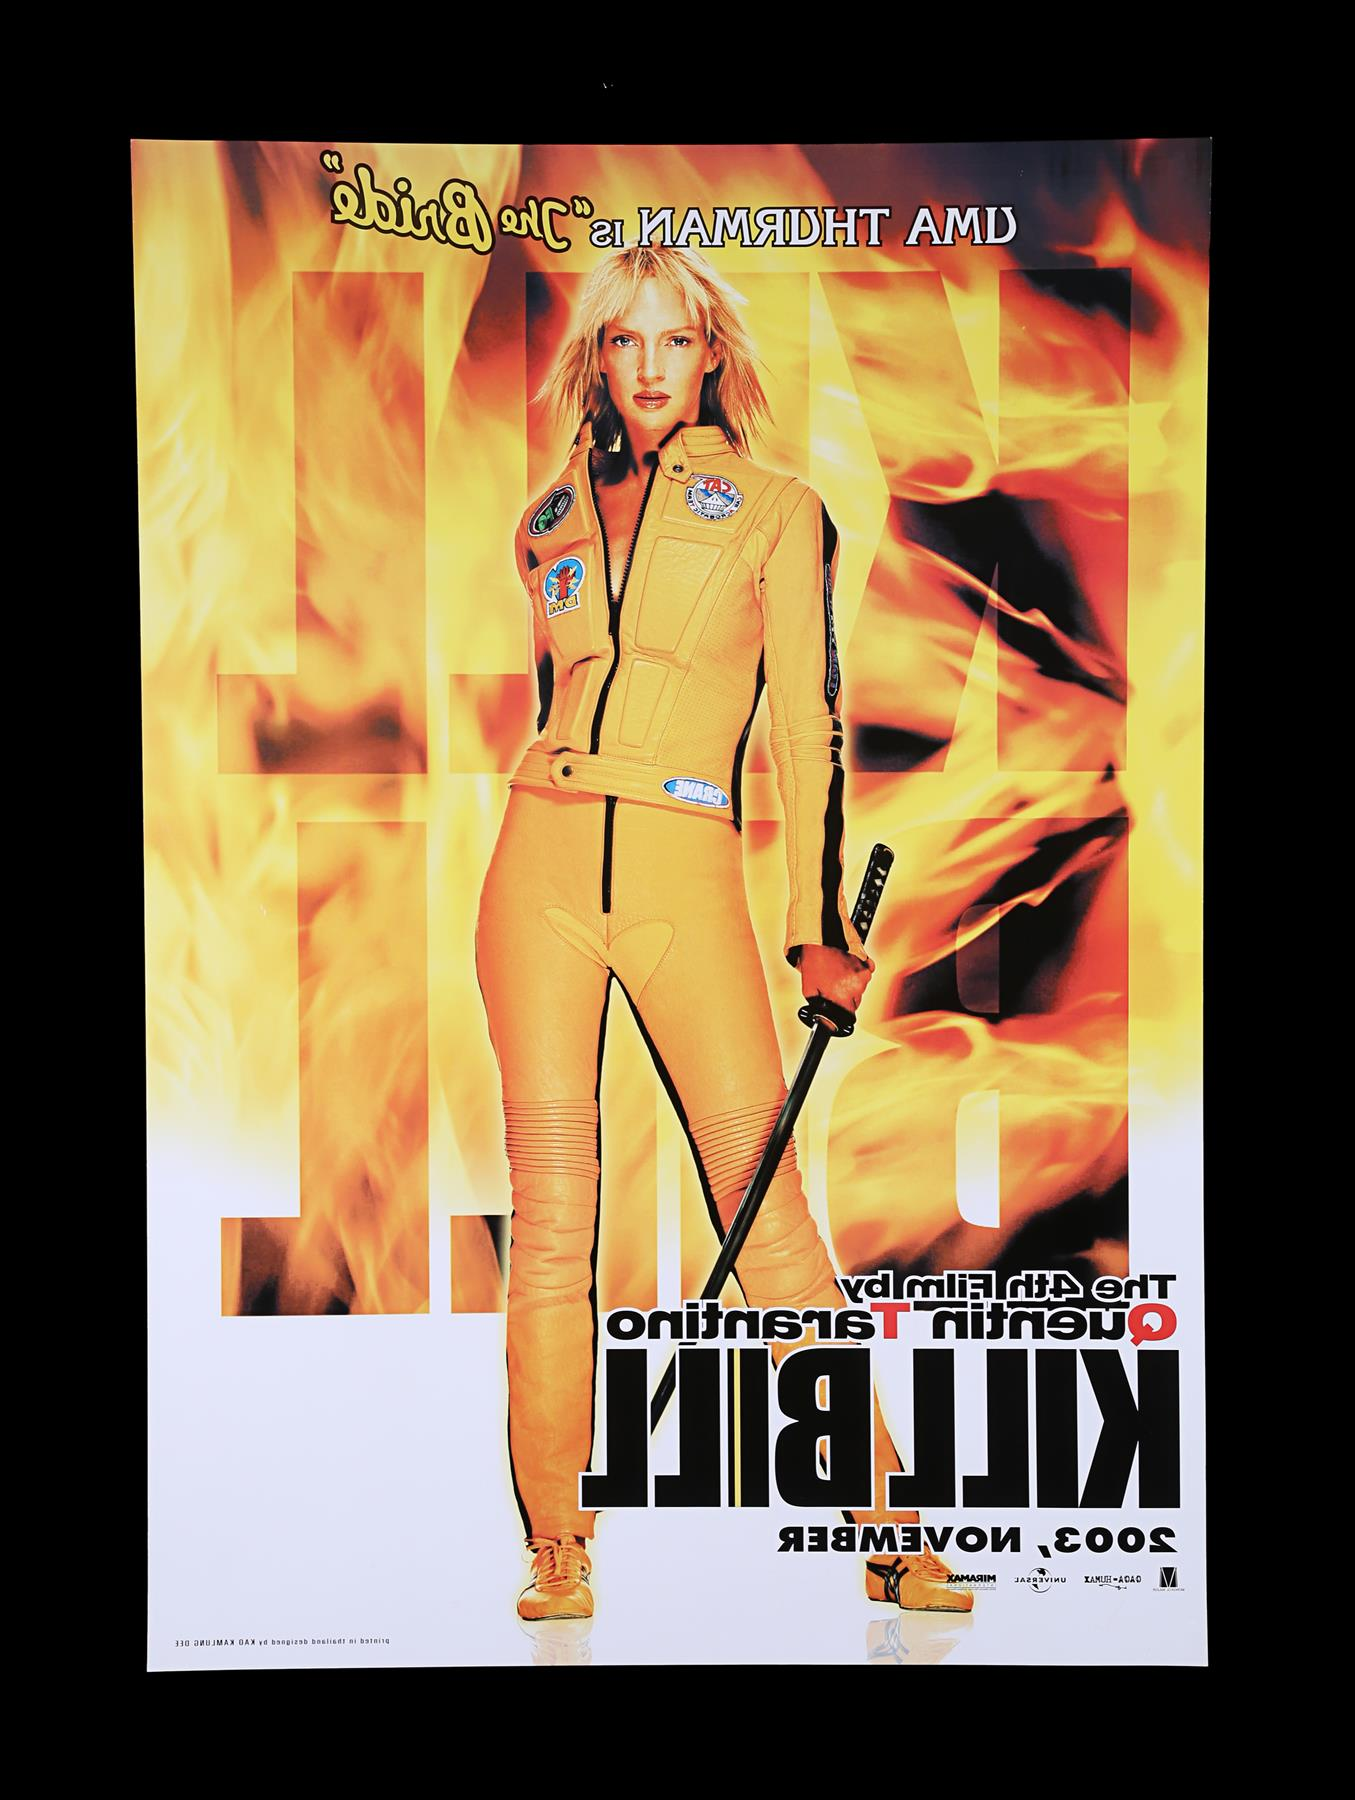 KILL BILL (2003) - US One-Sheet and Thai One-Sheet, 2003 - Image 6 of 10